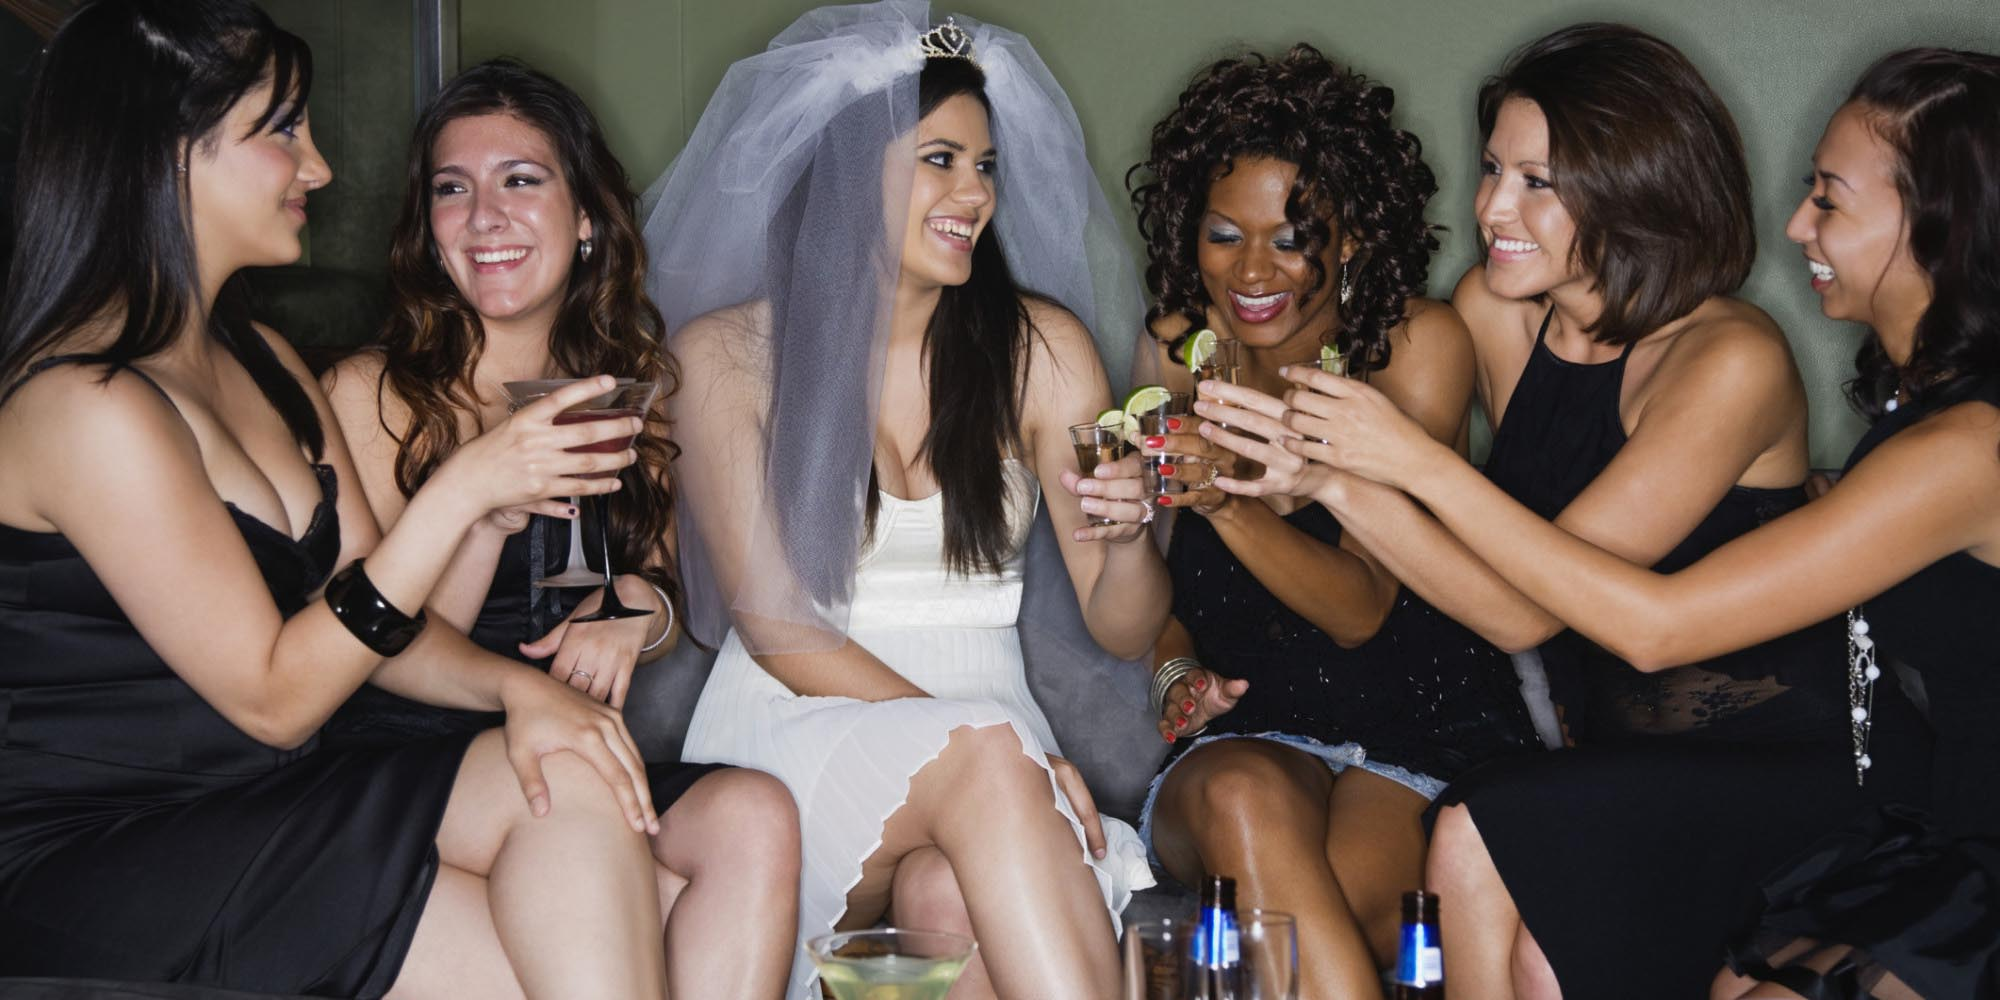 Cool Bachelorette Party Games